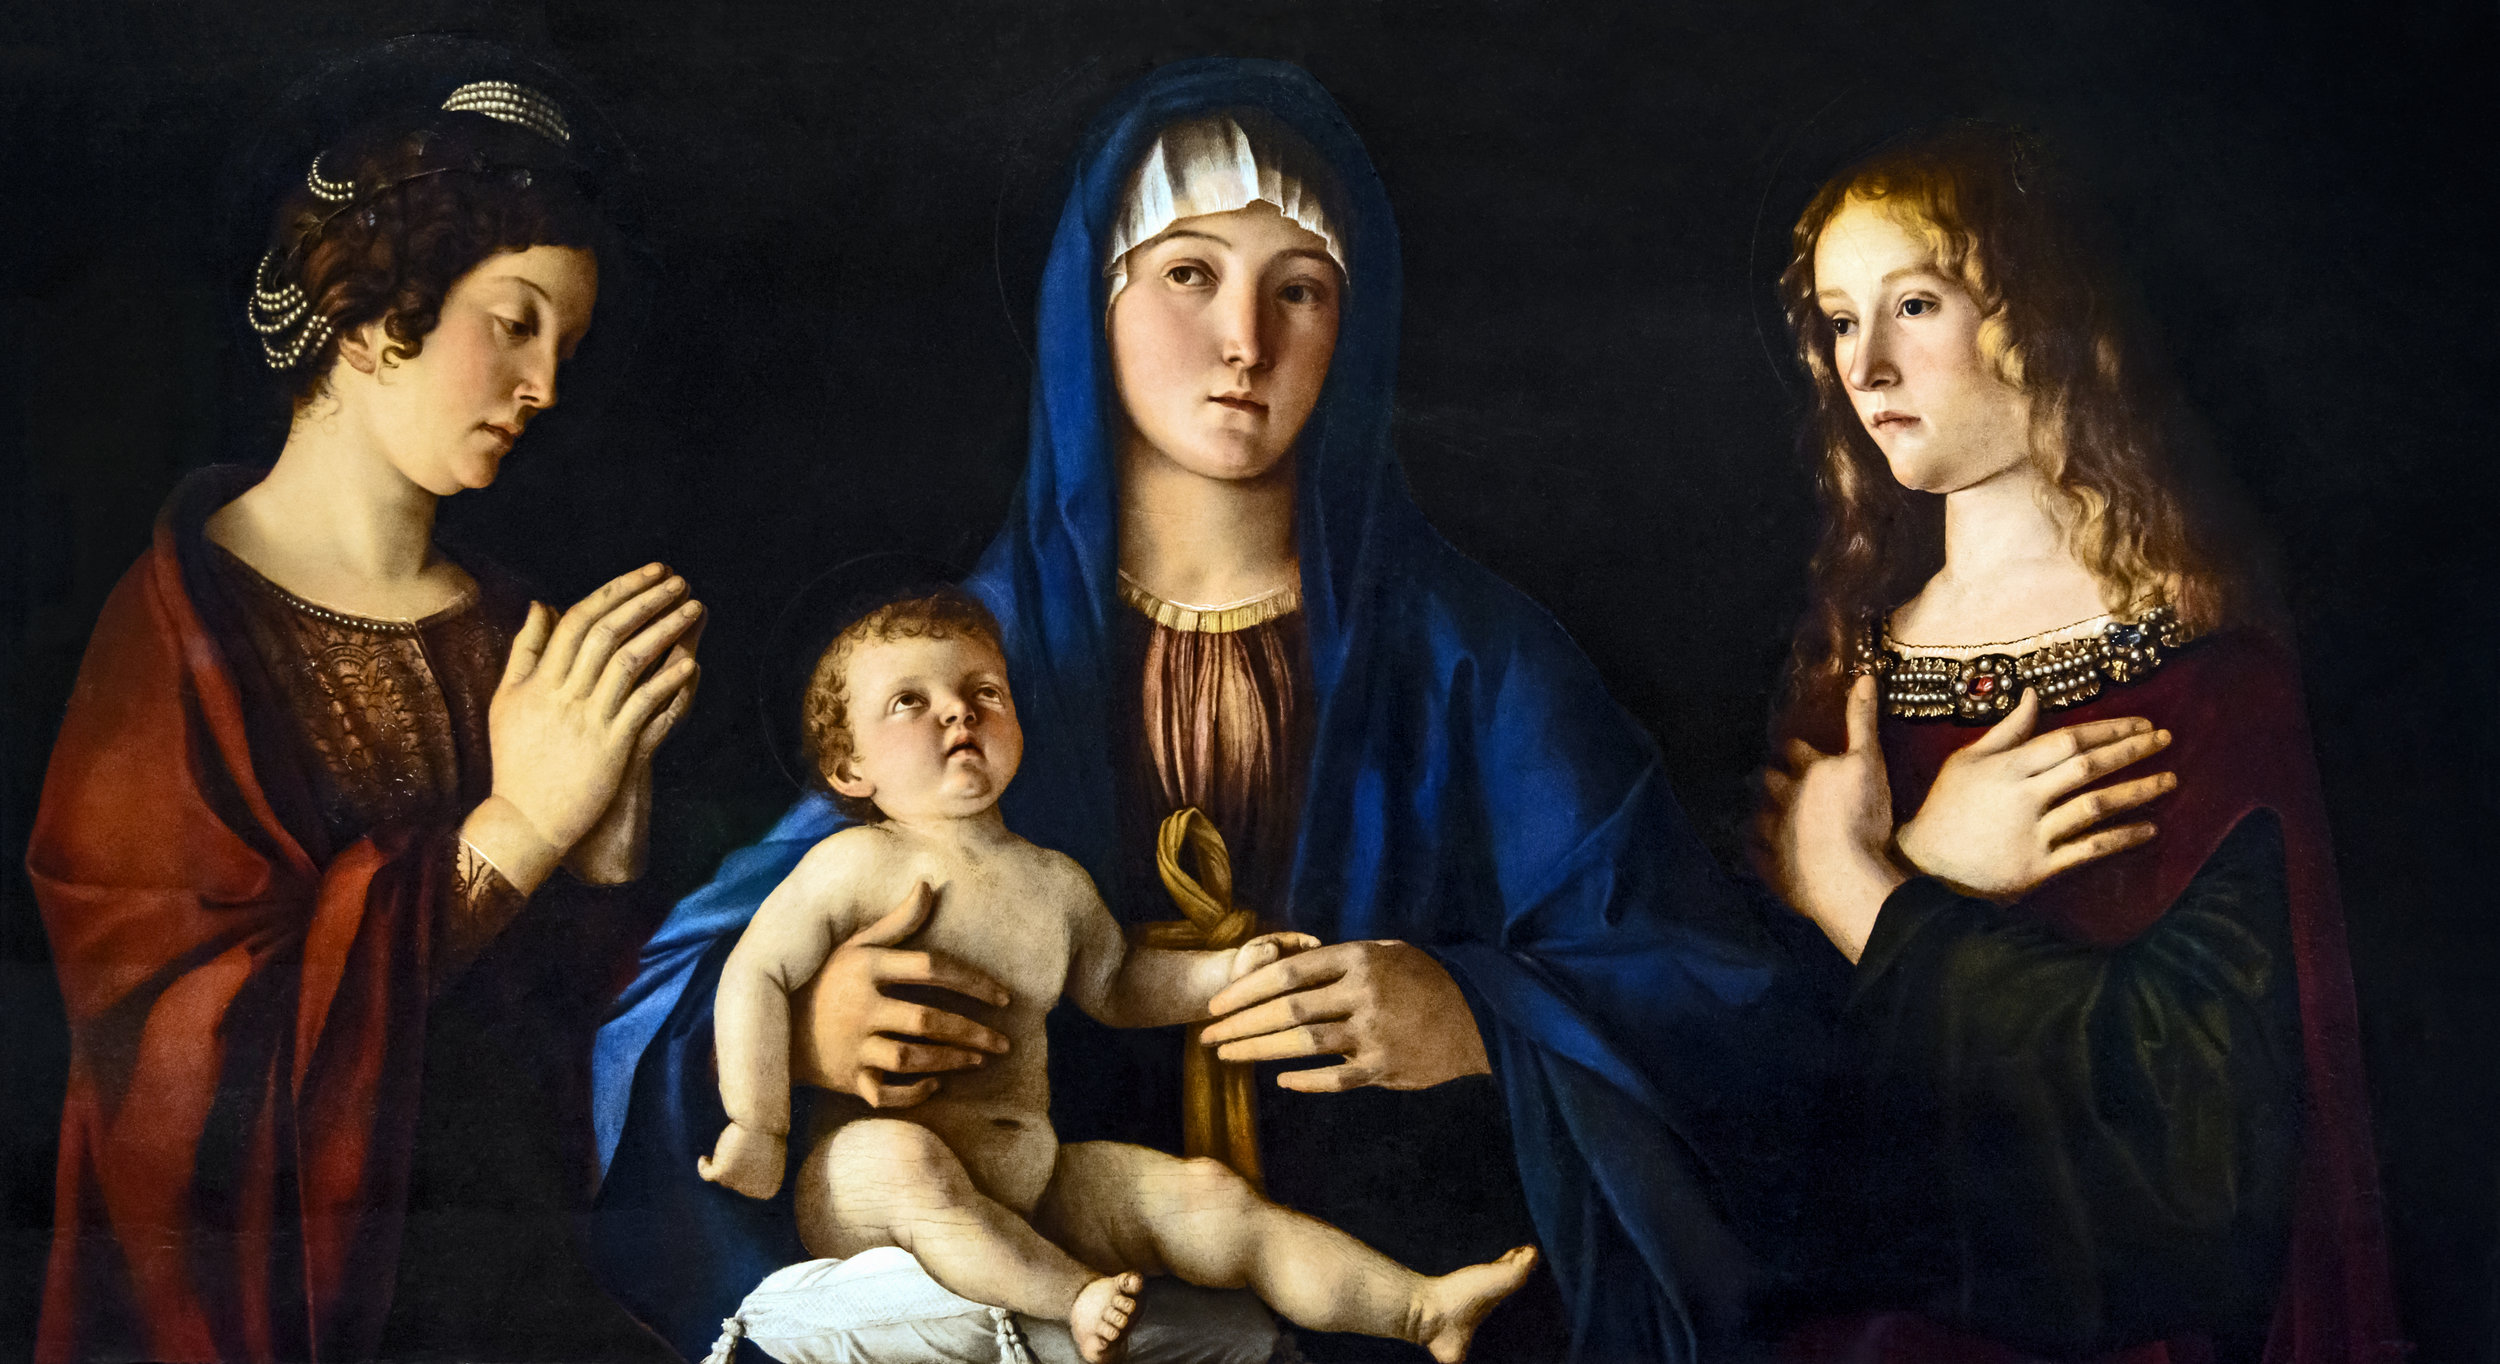 Madonna and Child with Saint Catherine of Alexandria and Mary Magdalene by GIOVANNI BELLIN I, circa 1490   Gallerie dell'Accademia  Collection